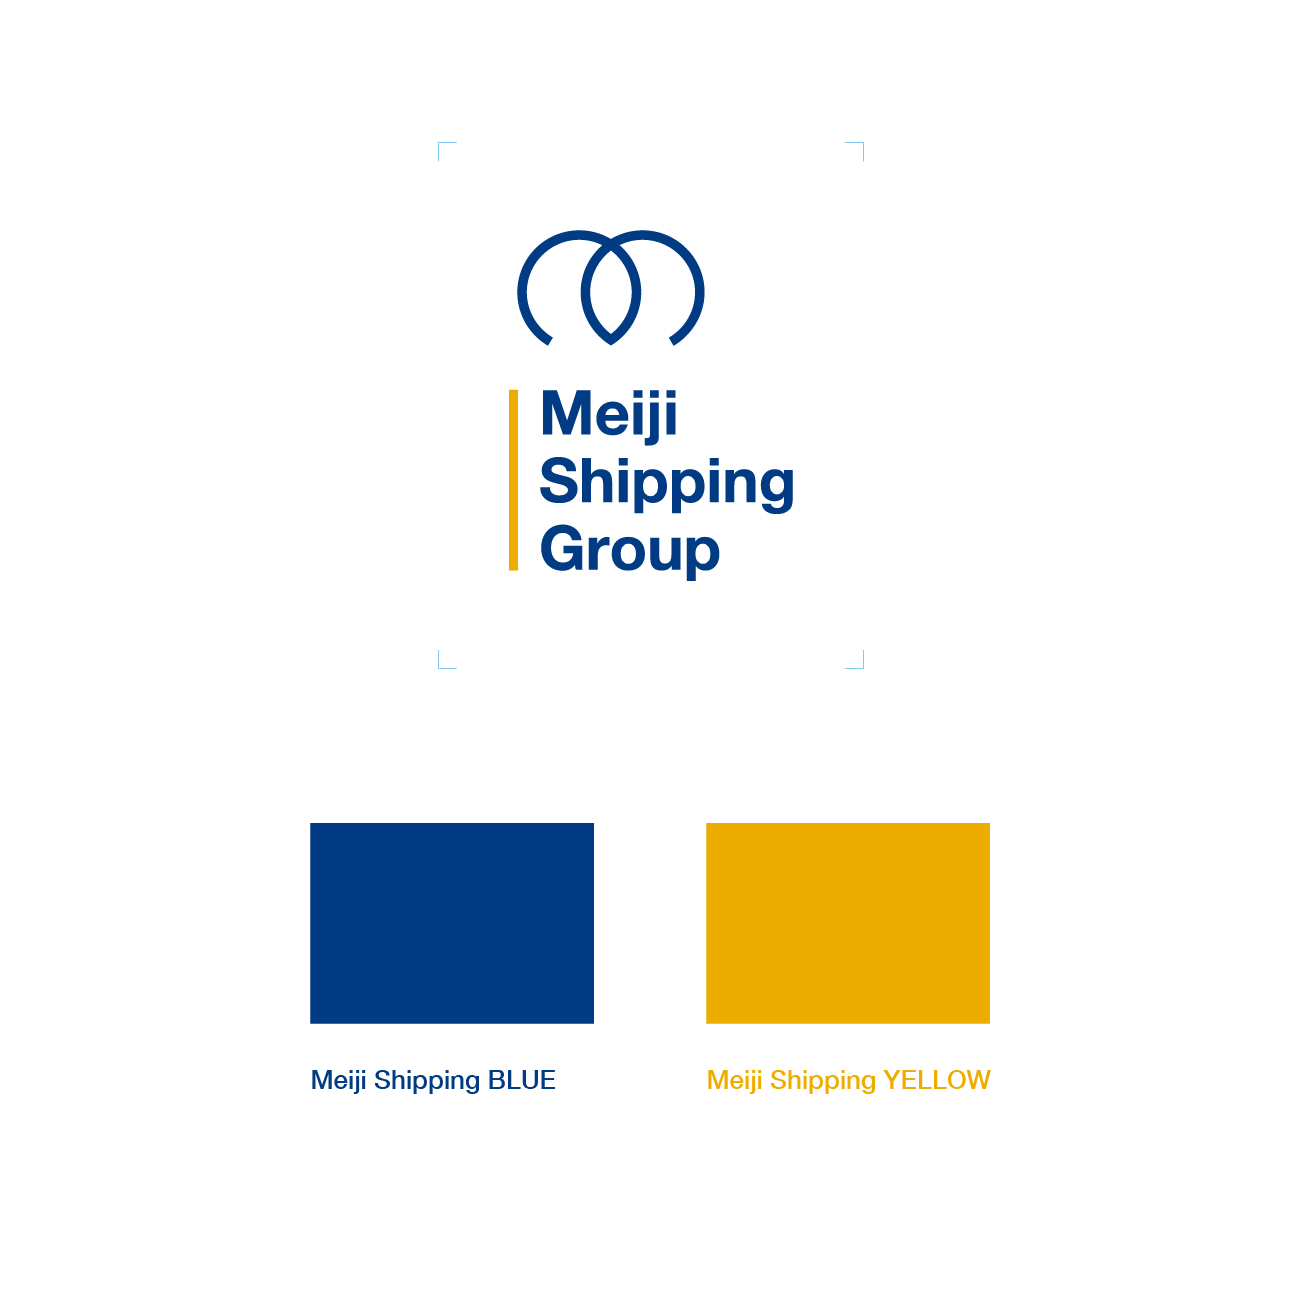 Meiji Shipping Group|Logo, Identification Manual, Business Card|グラフィックデザイン|東京都目黒区 兵庫県神戸市